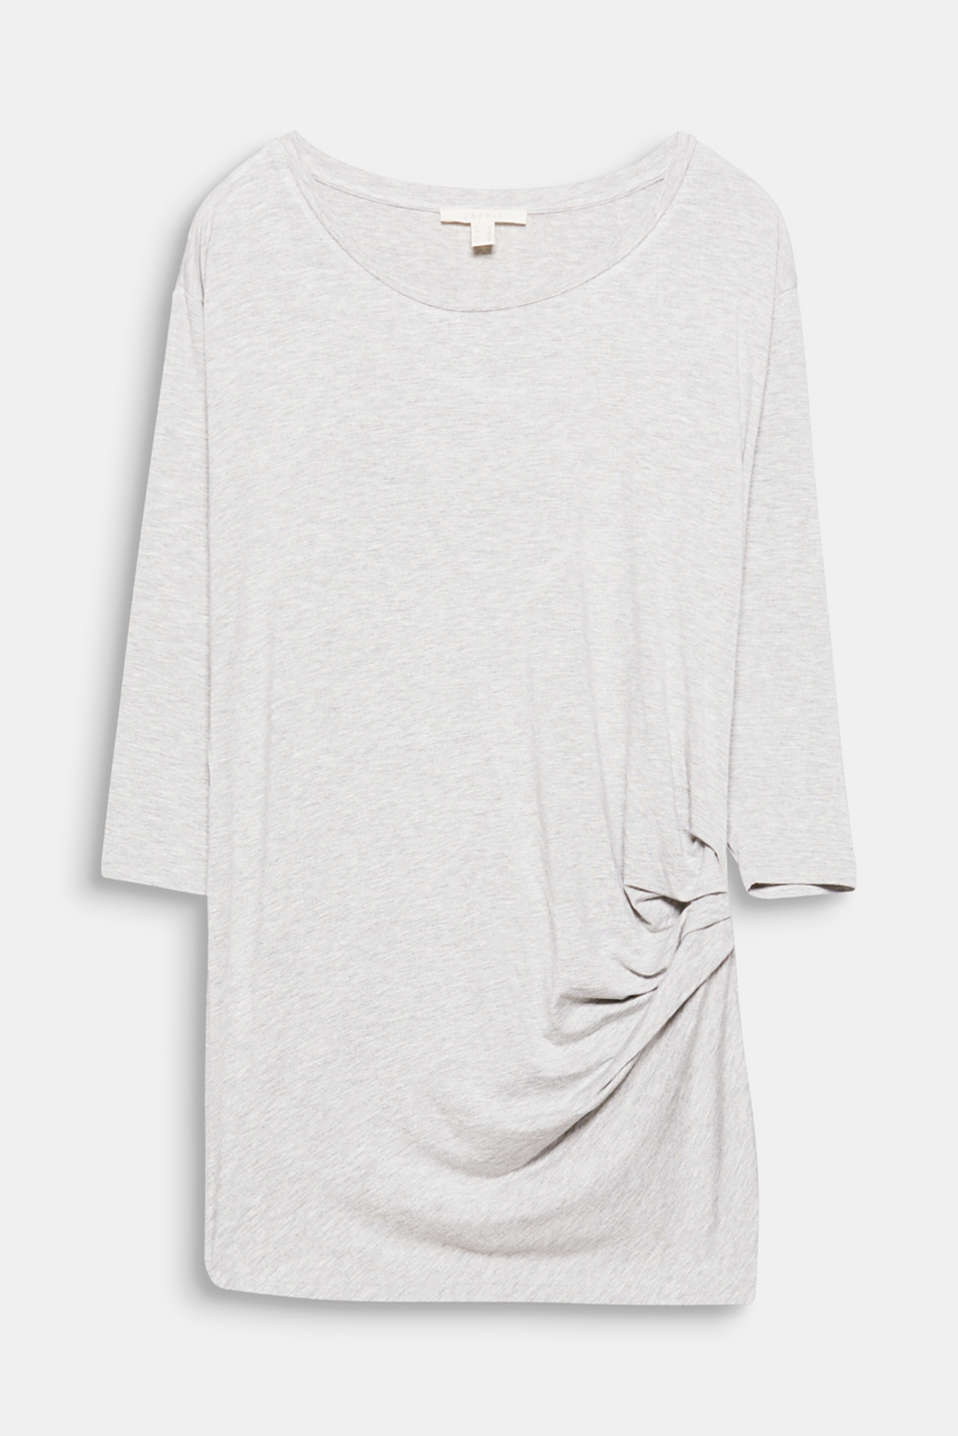 An update for a fashion basic! Feminine gathering embellished this lightweight long sleeve top.